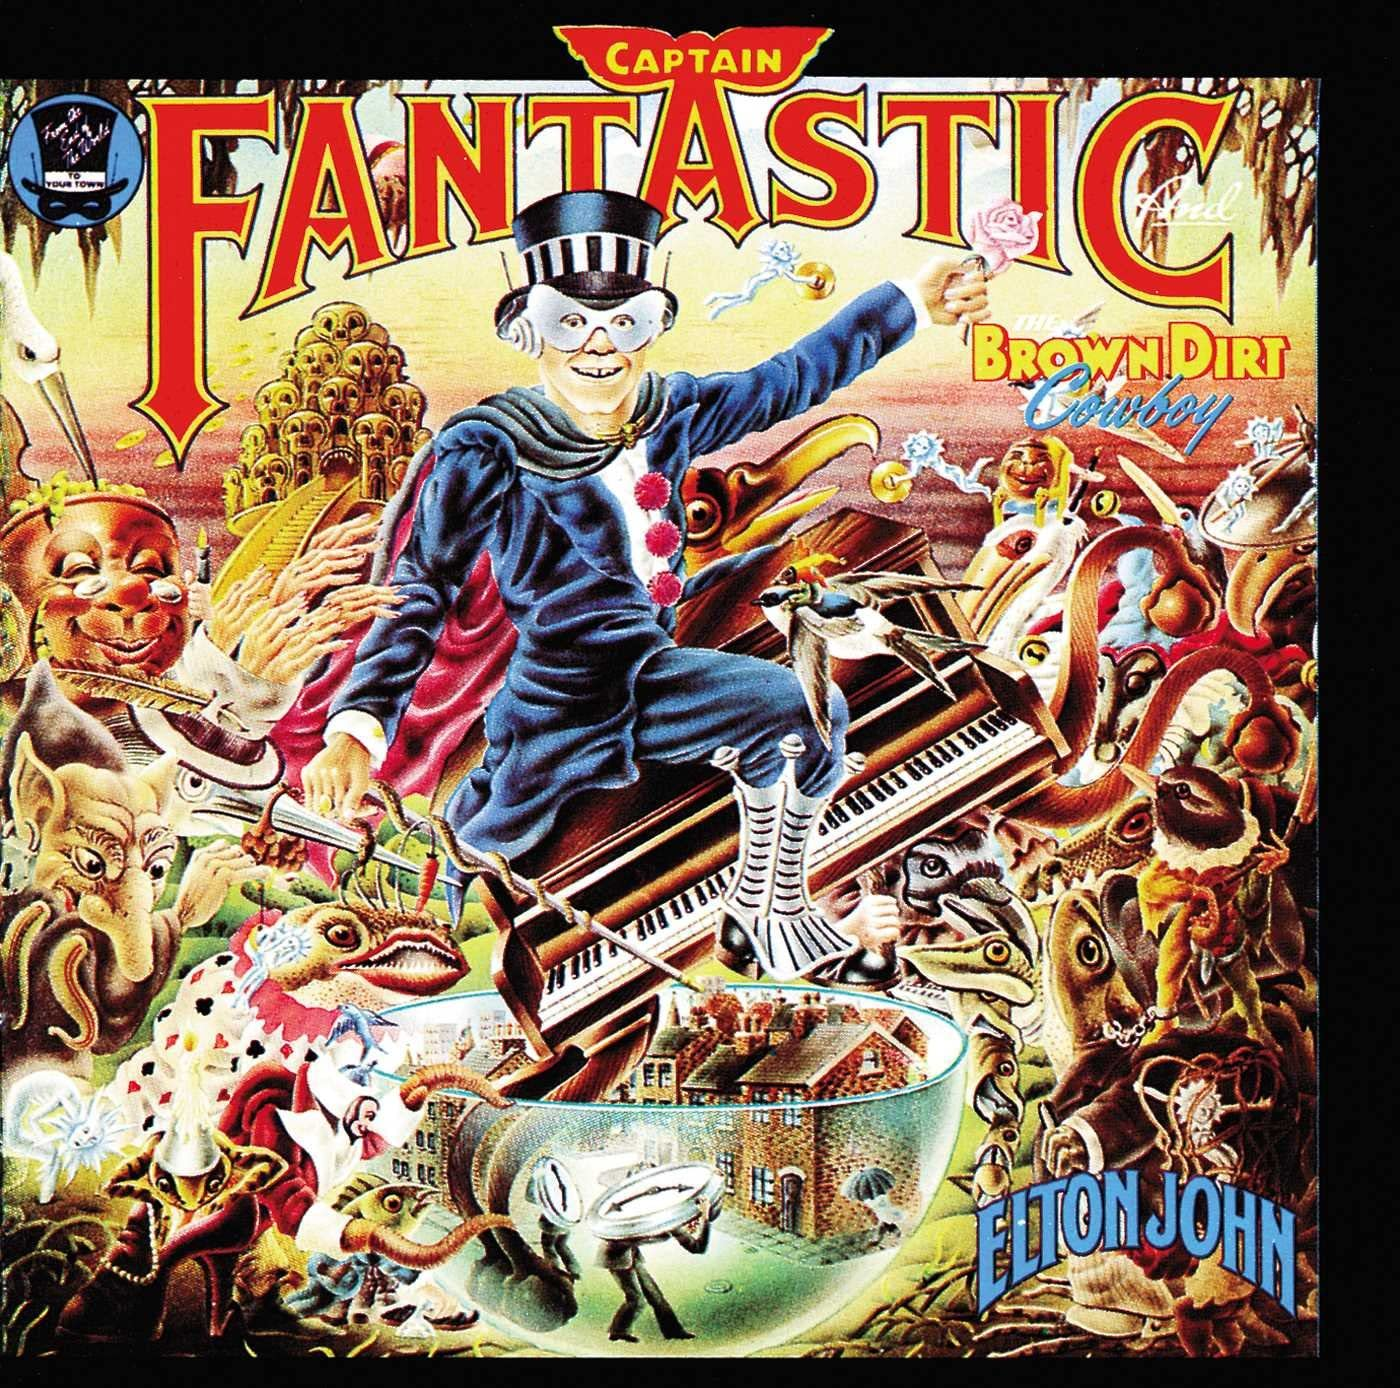 Elton John - Captain Fantastic And The Brown Dirt Cowboy - Deluxe Gatefold